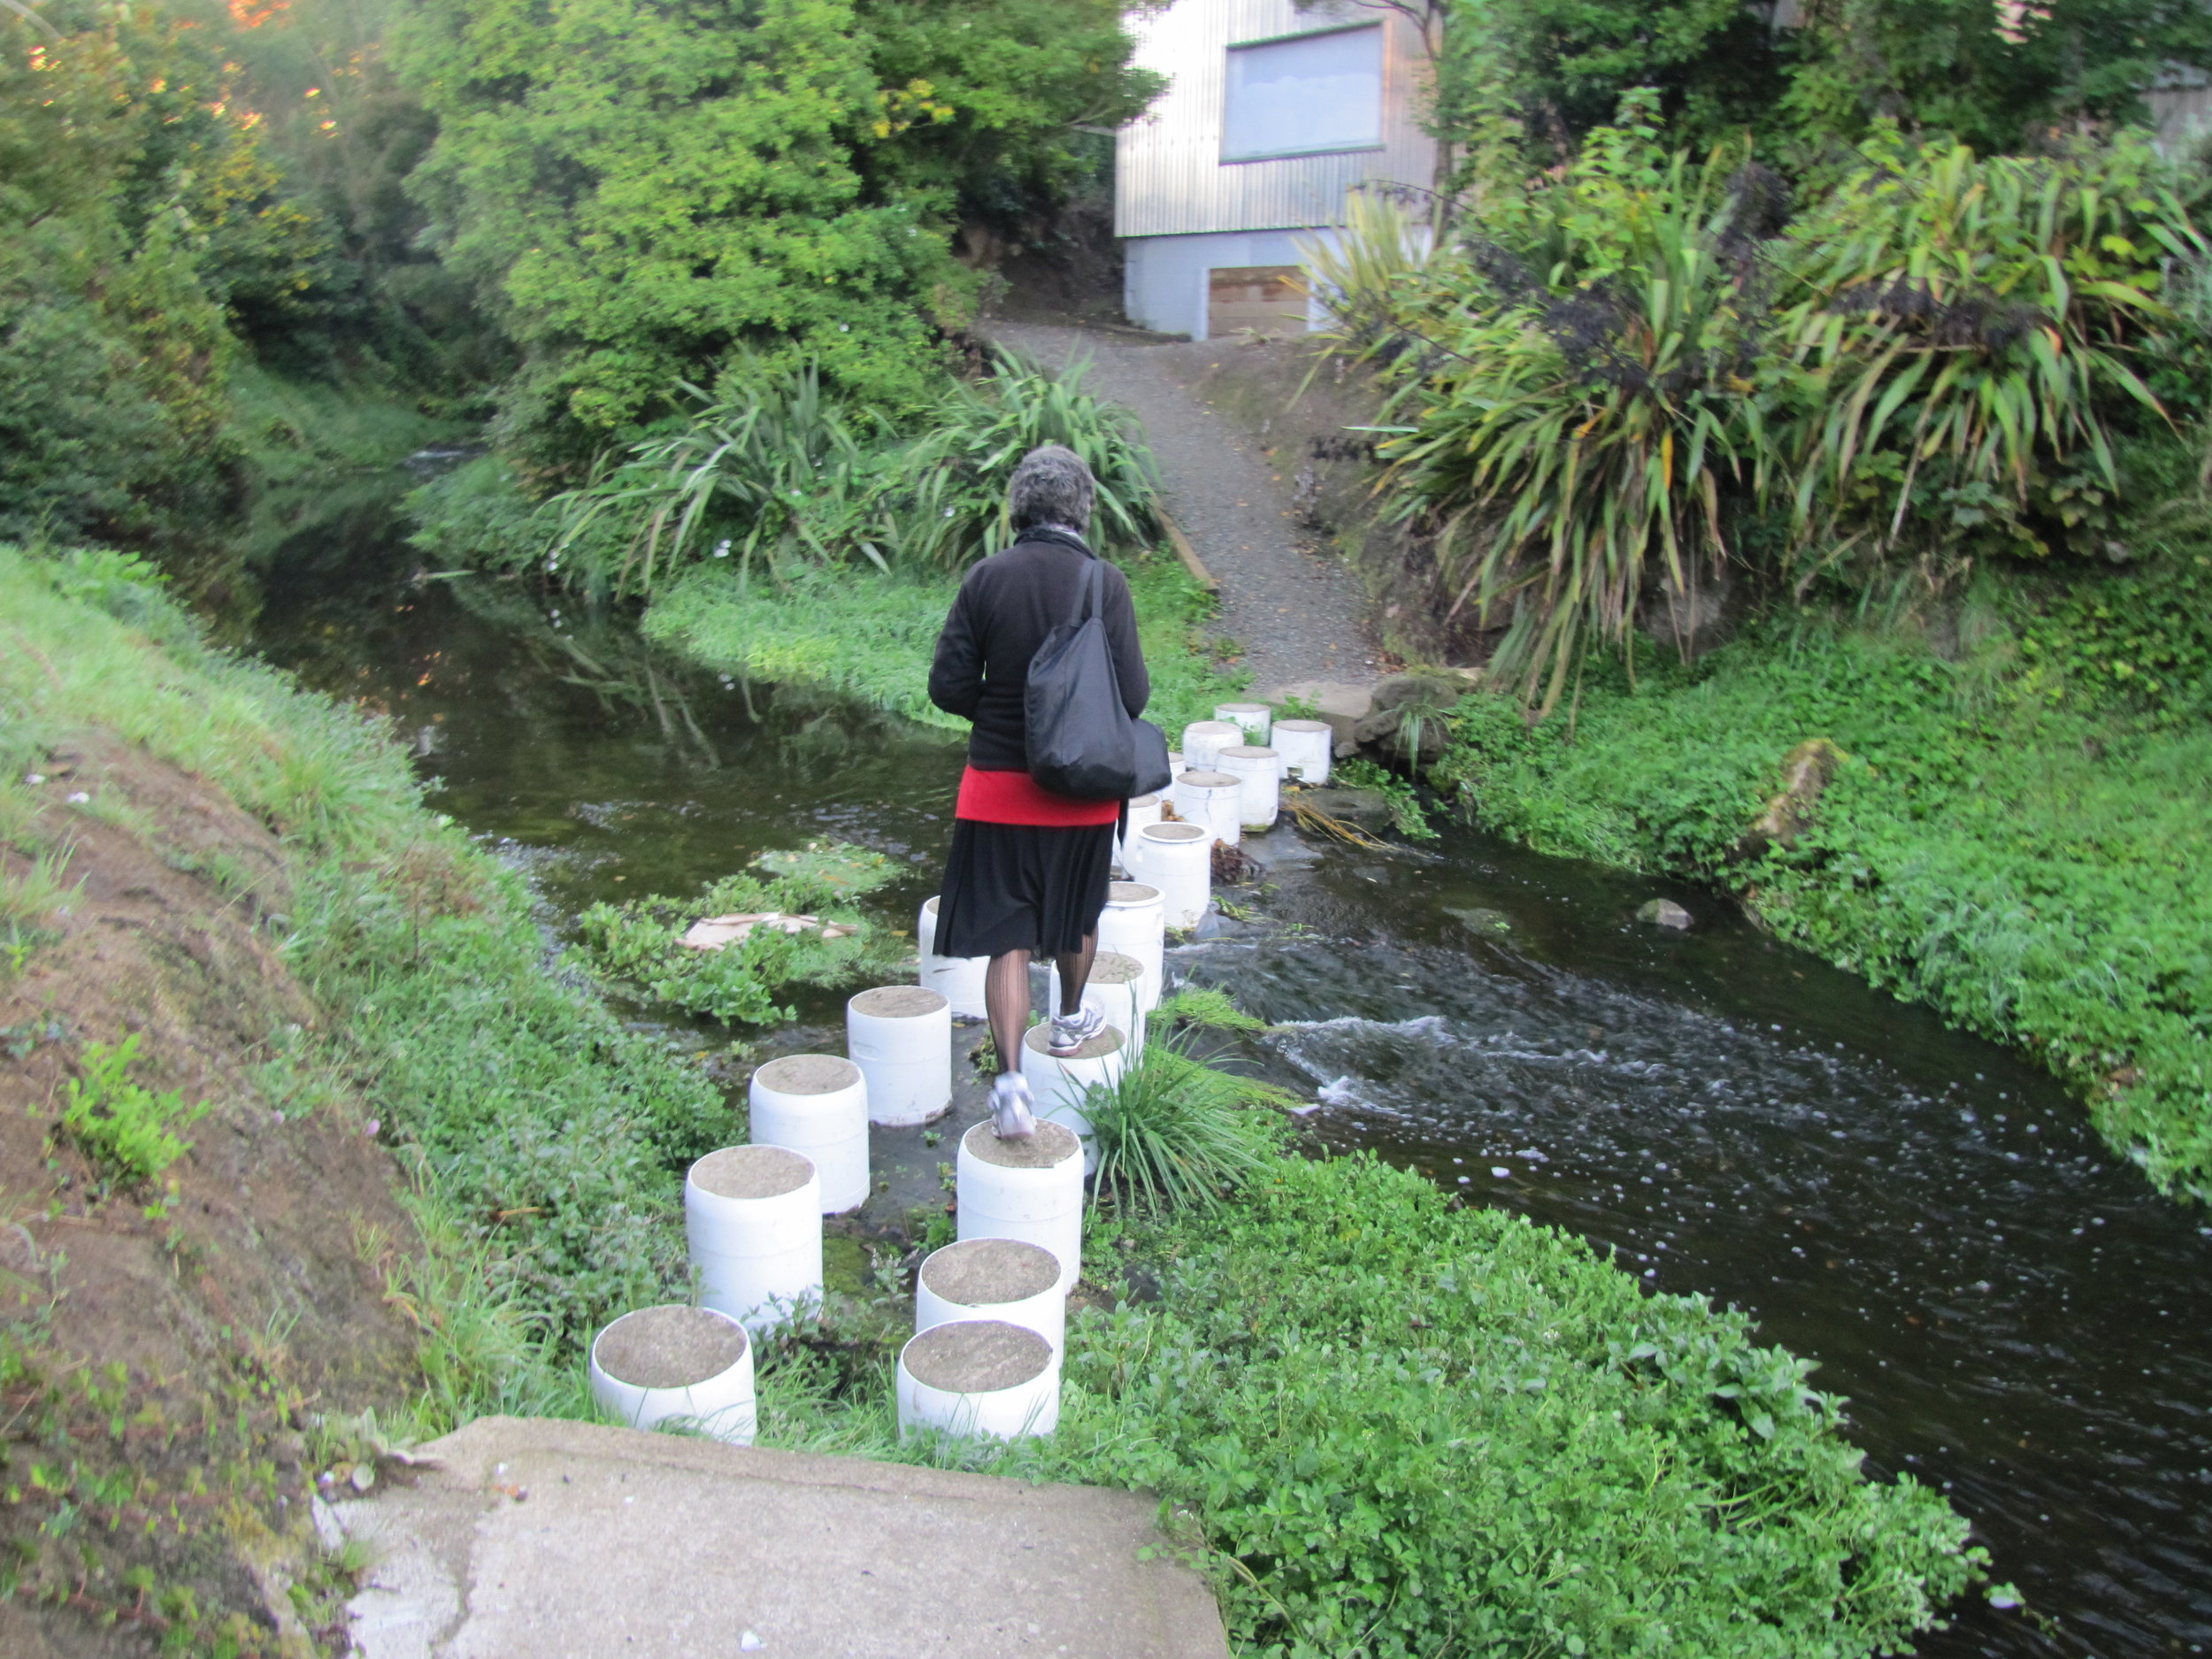 Betsy hops the stepping stones on her way to work.